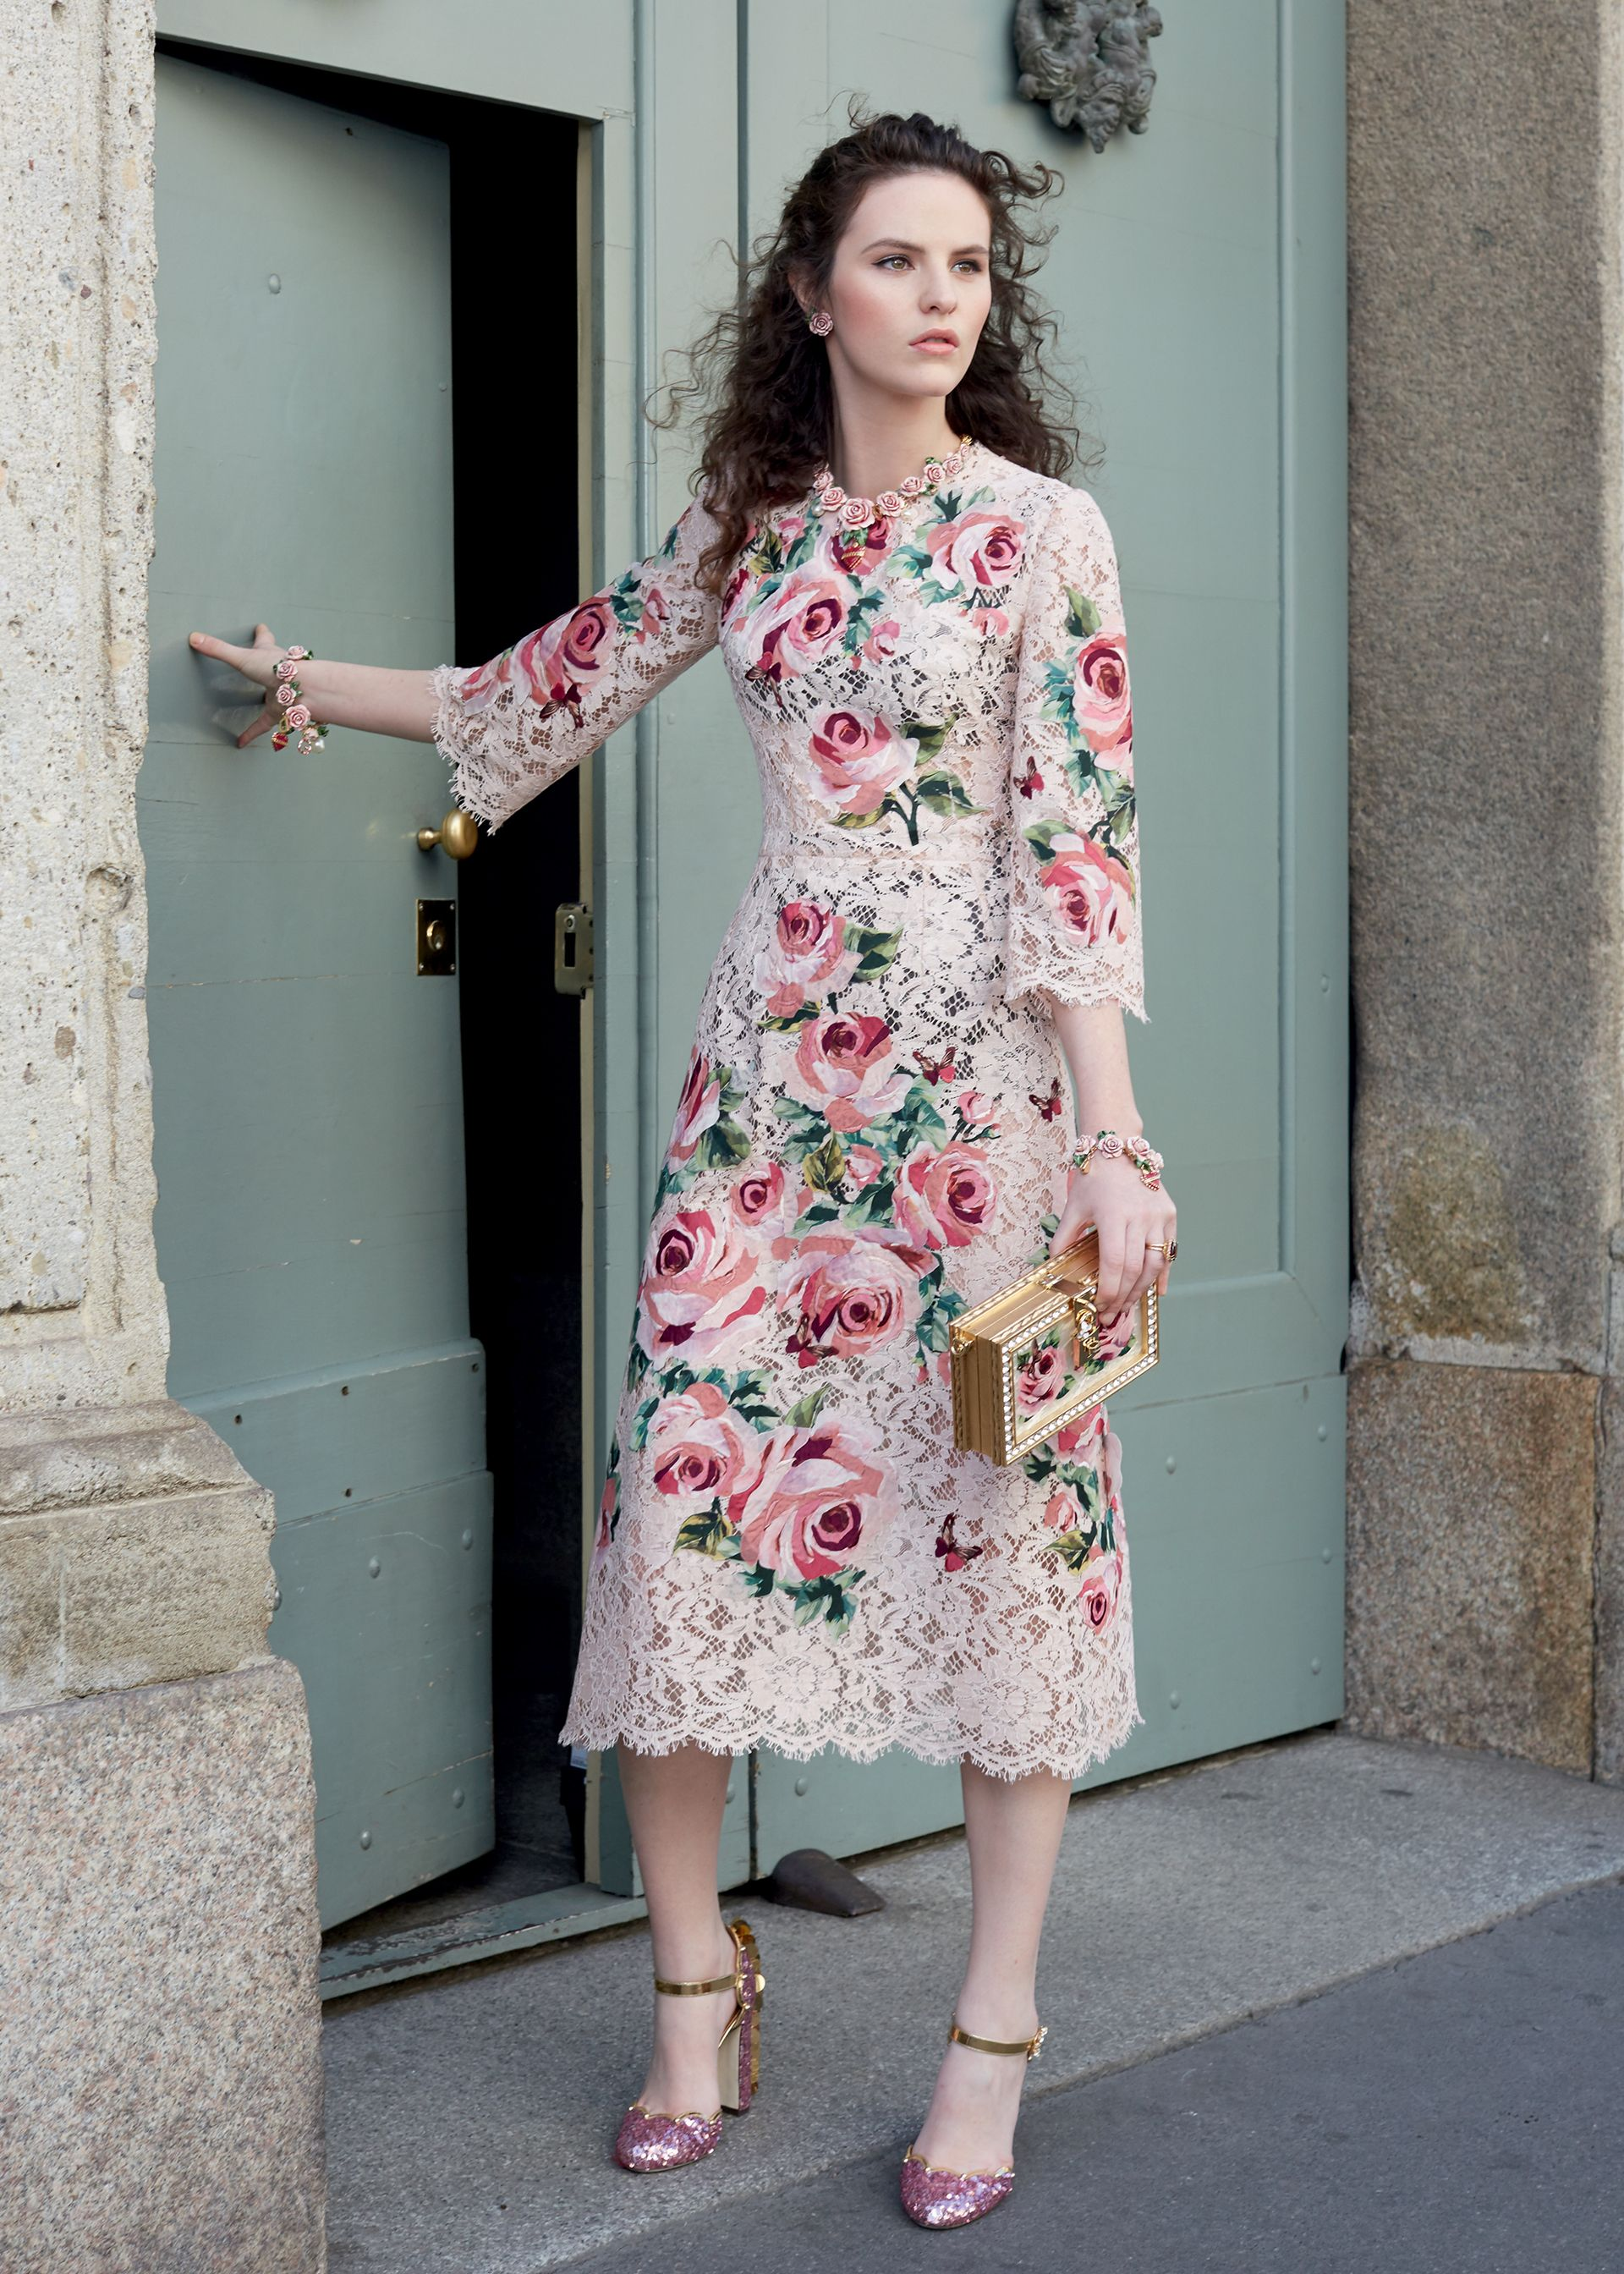 Dolce Gabbana Love Christmas Collection 2020 Dolce&Gabbana Women's Love Christmas Collection Spring Summer 2018